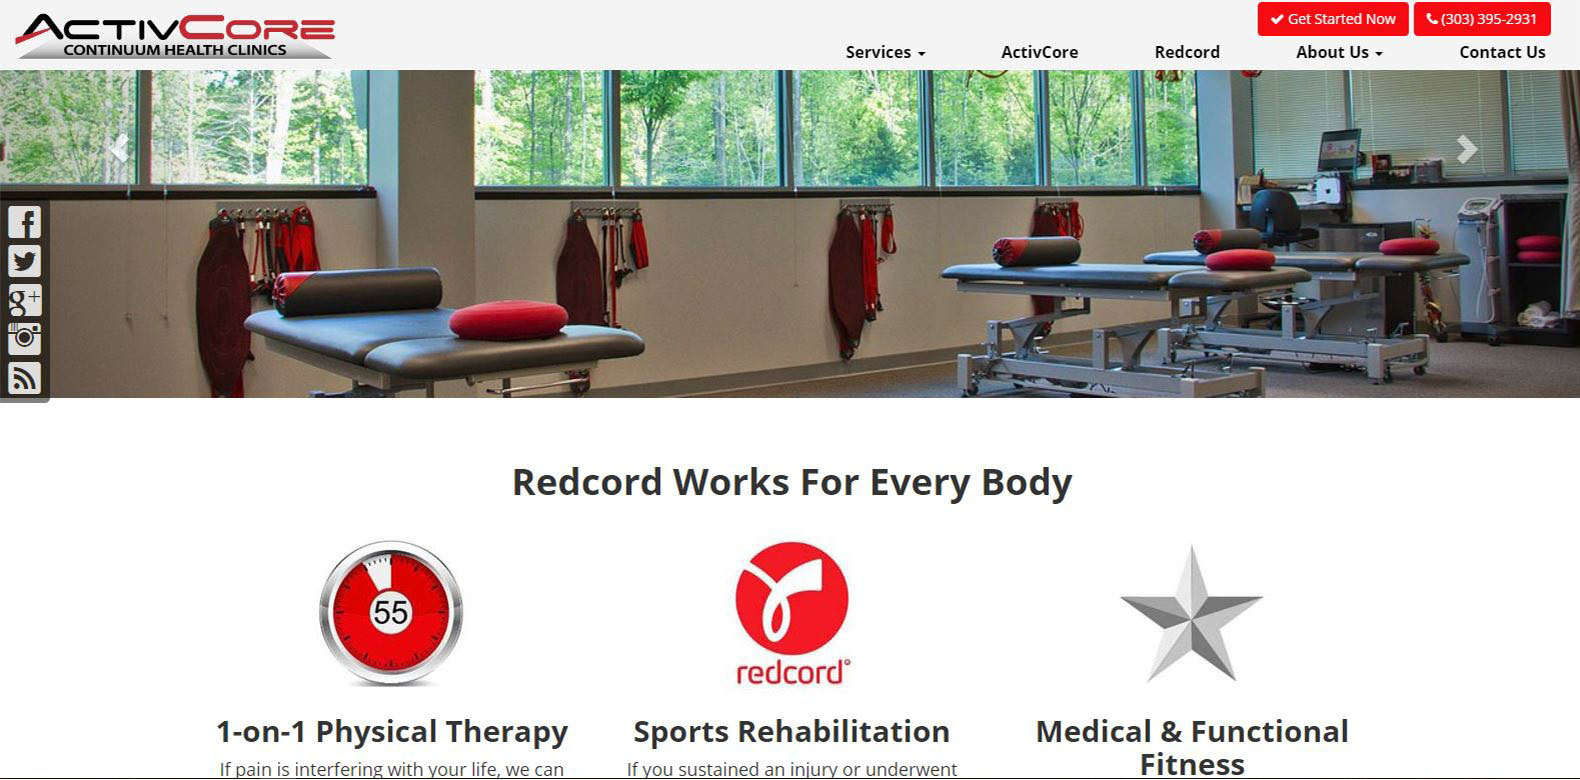 New Website Launched: ActivCore Denver